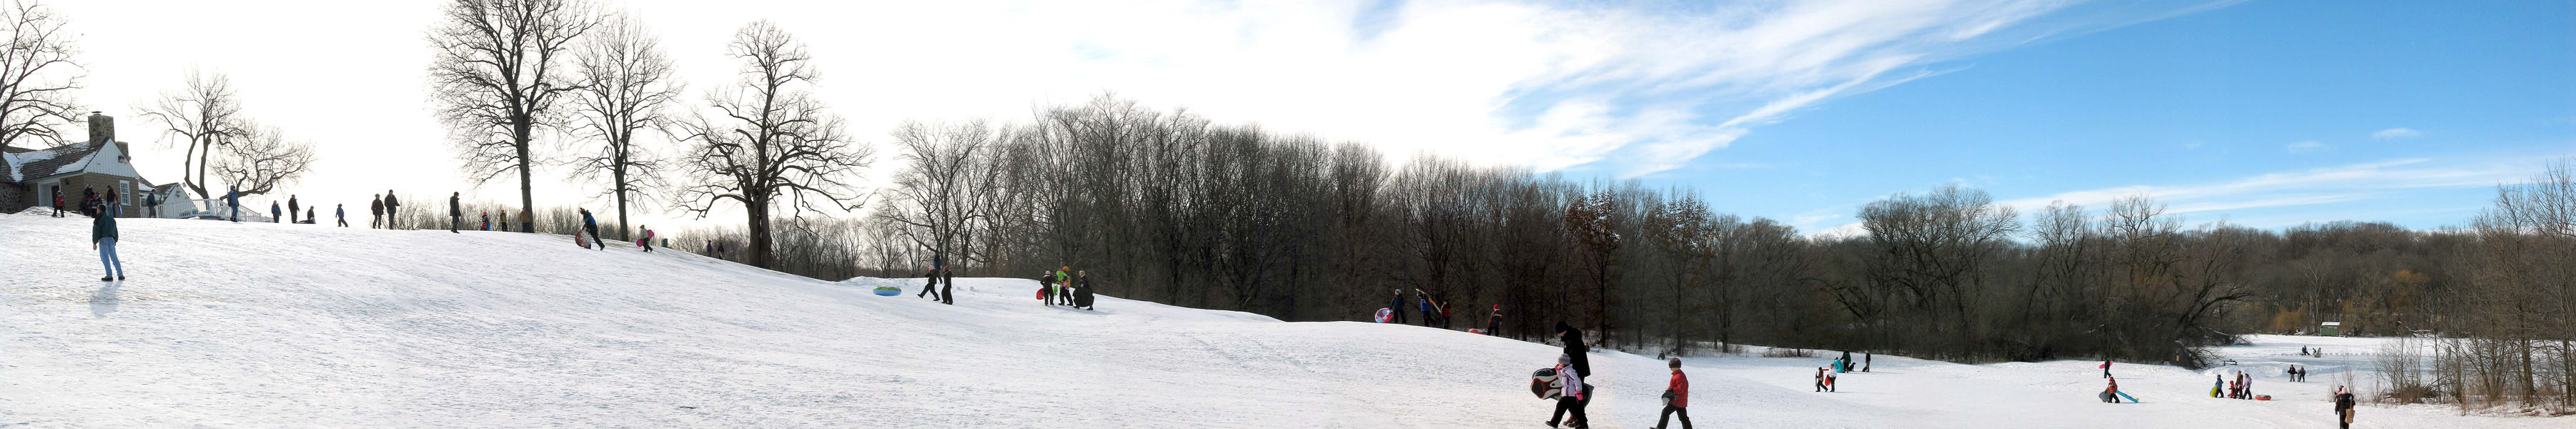 Sledding at Whitnal County Park clubhouse on a sunny day